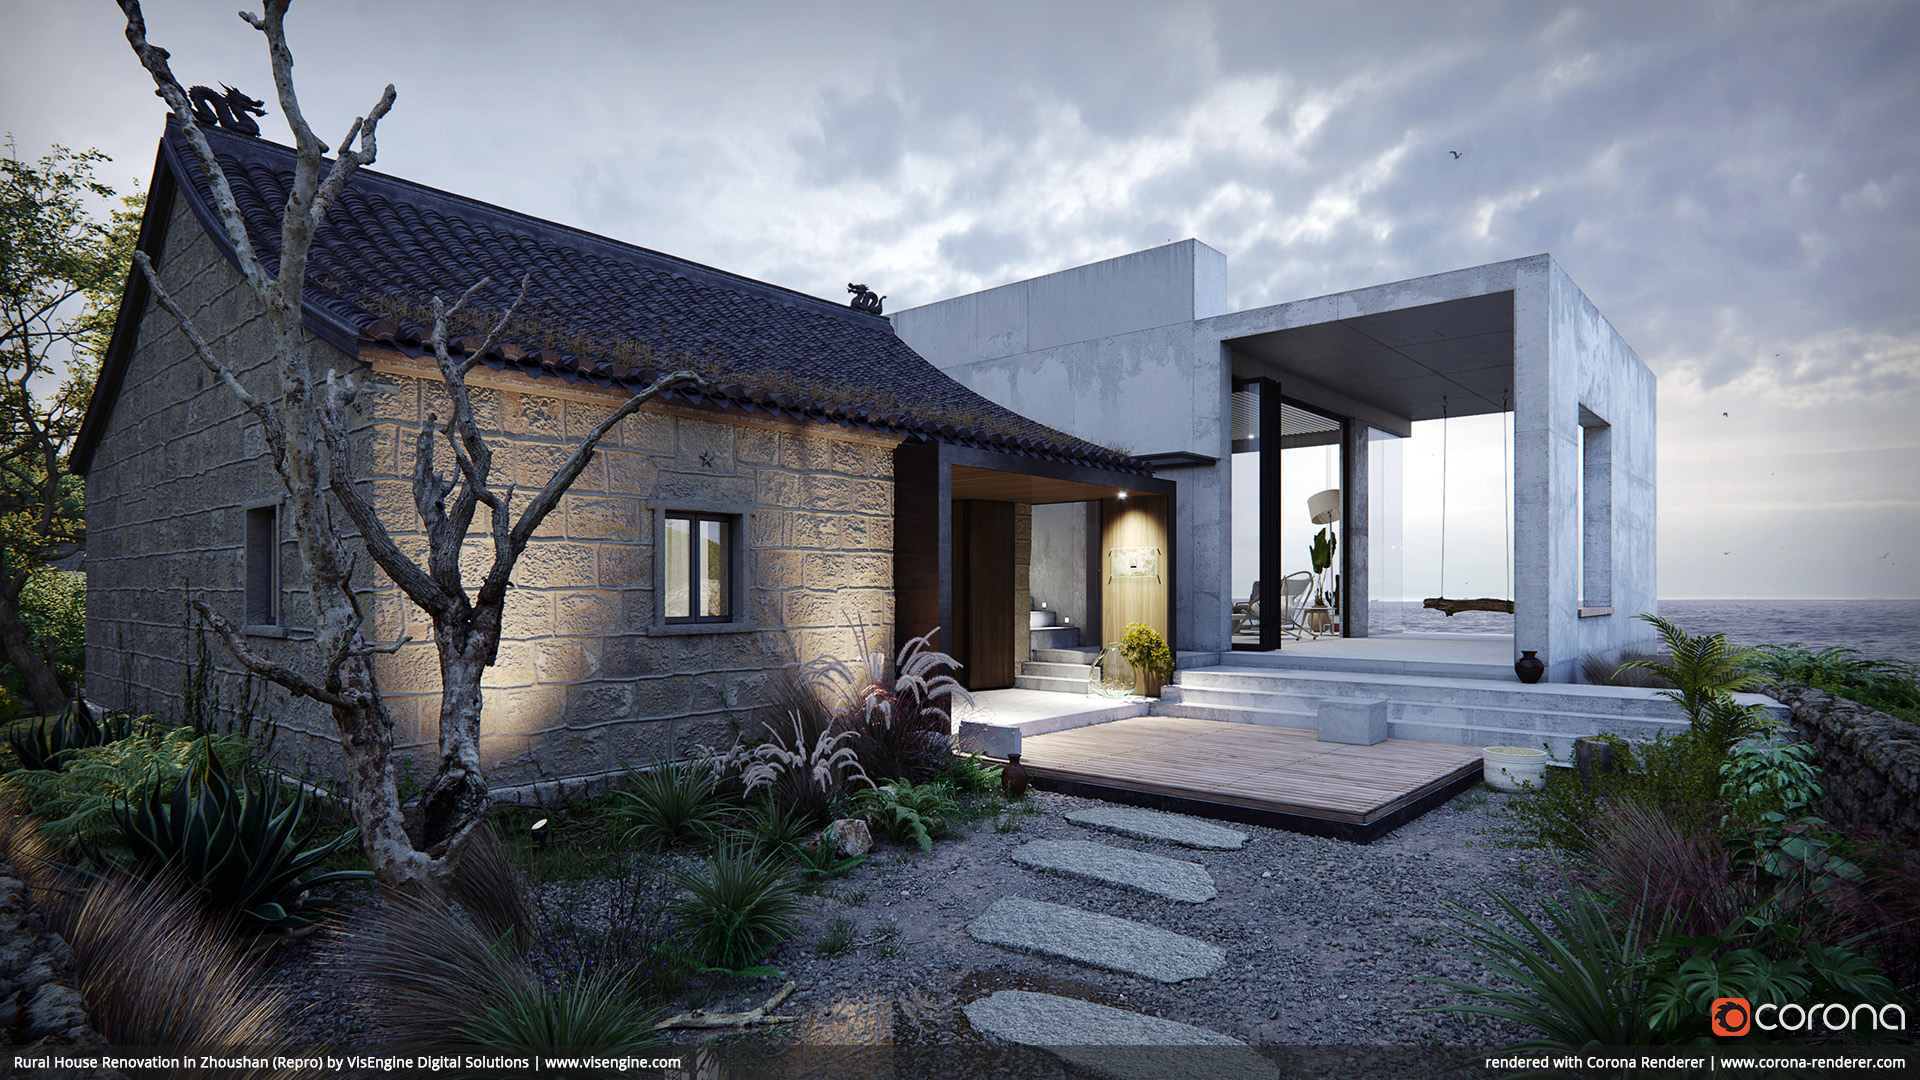 Rural House Renovation in Zhoushan (Repro) by VisEngine Digital Solutions